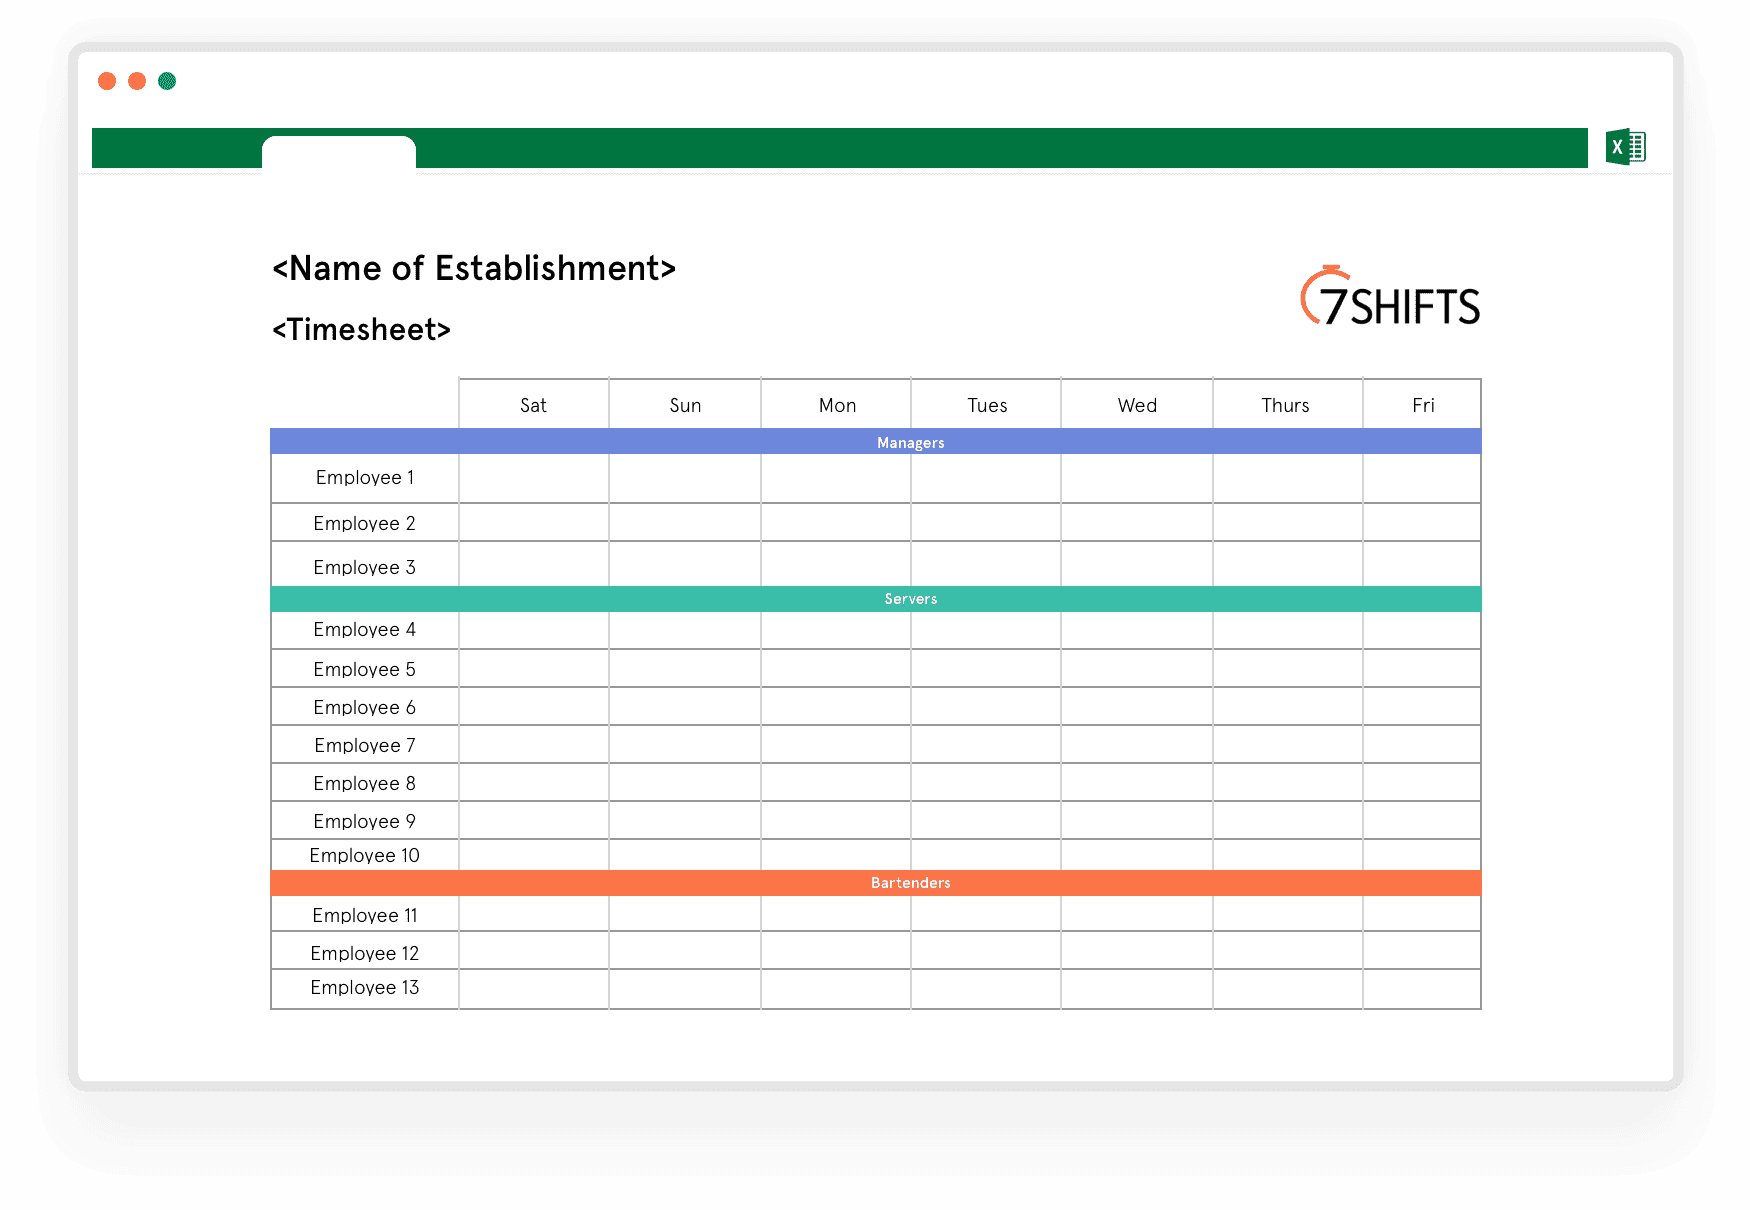 Download] Free Timesheet Excel Template for Restaurants   30shifts ...